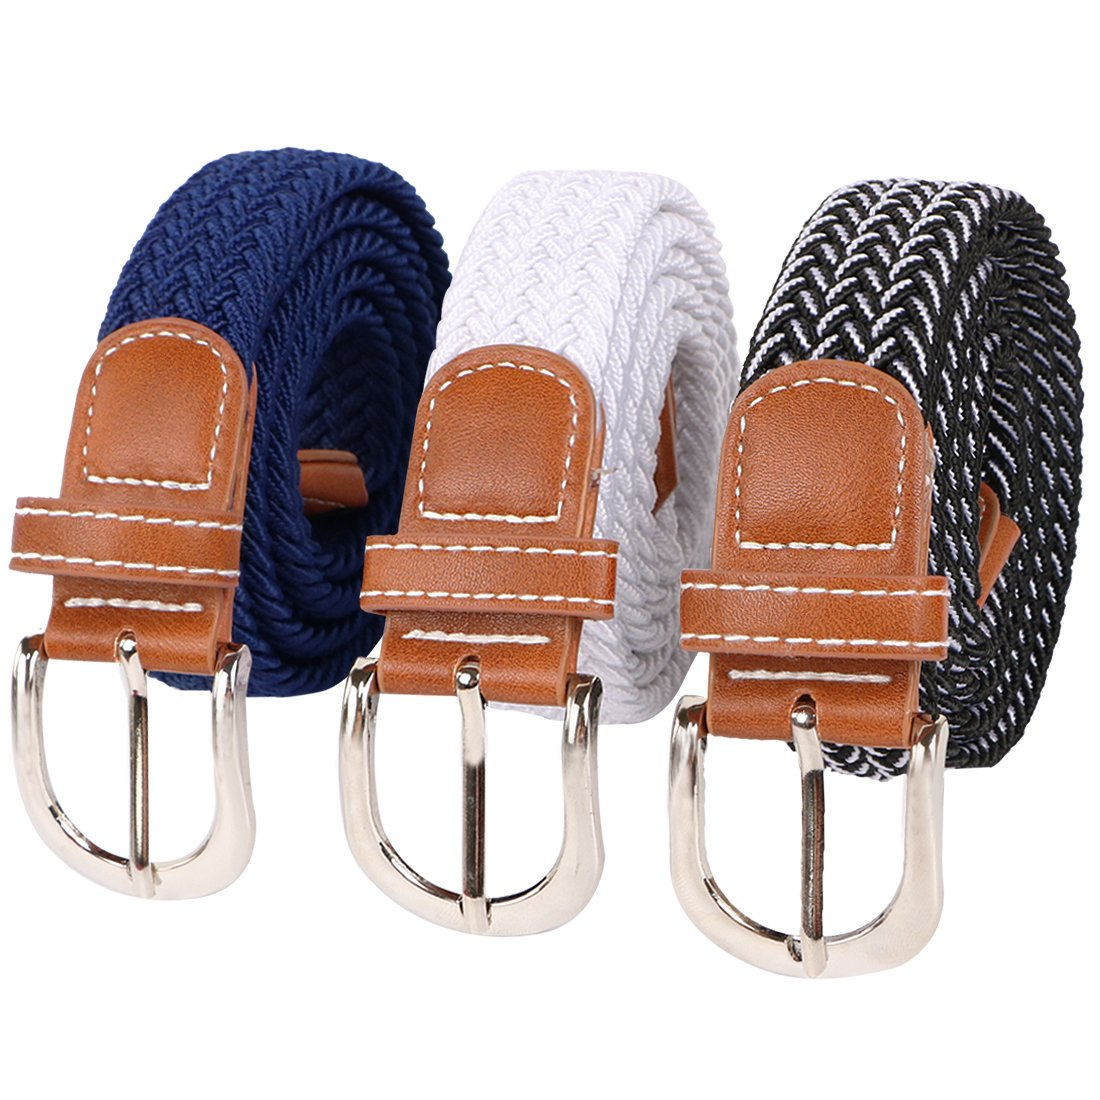 kilofly 3 pcs Kids Boys Girls Stretchy Elastic Web Woven Braided Belts Set